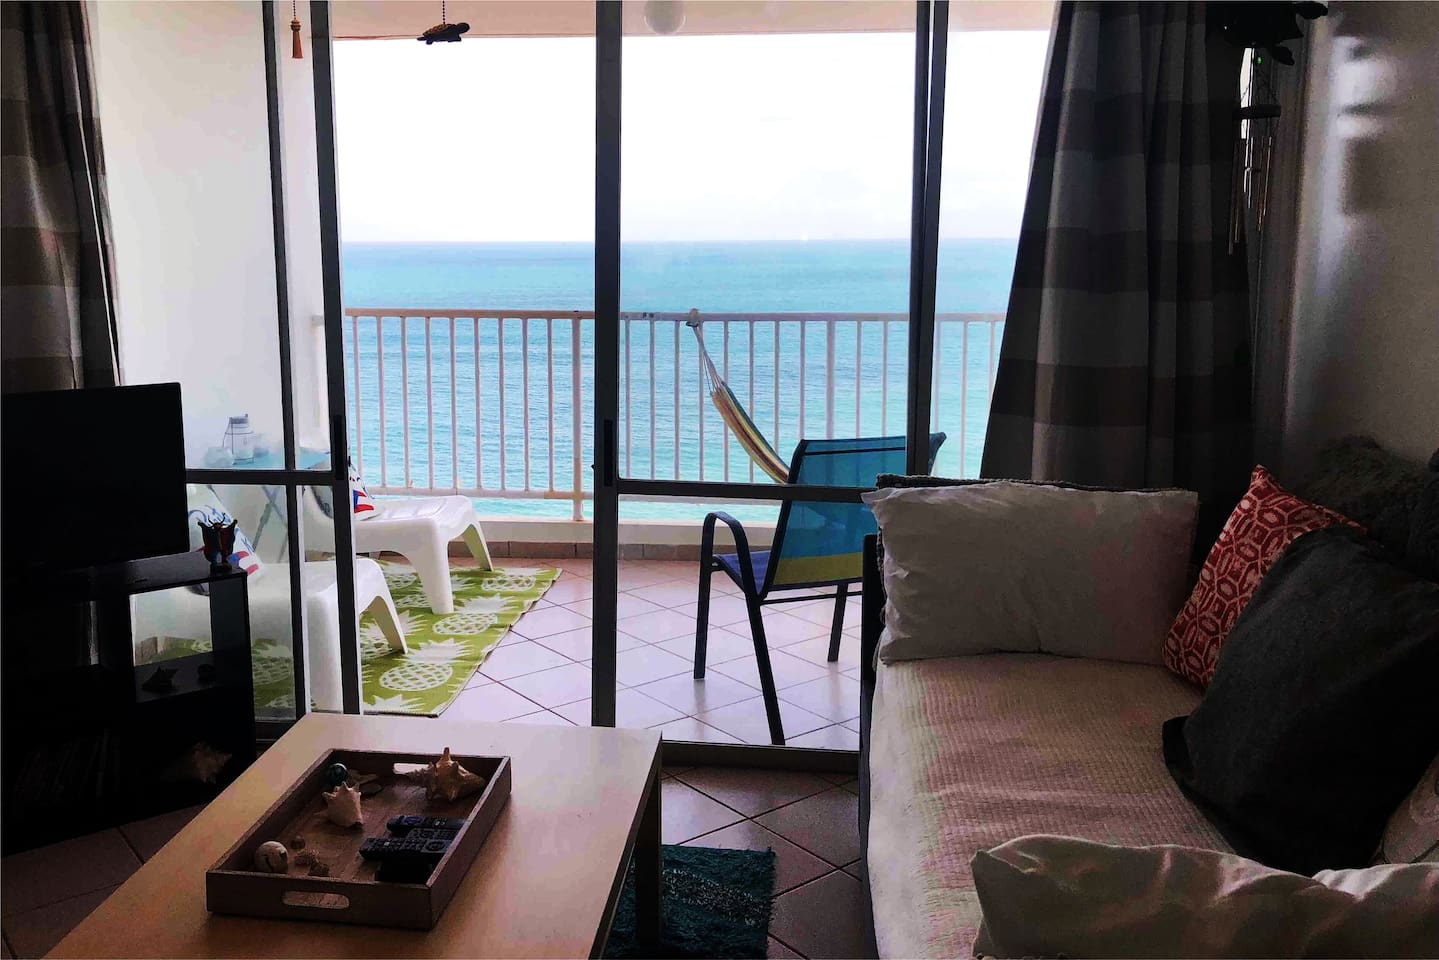 Enjoy the gorgeous view from the minute you walk in! Lounge on the balcony all day!